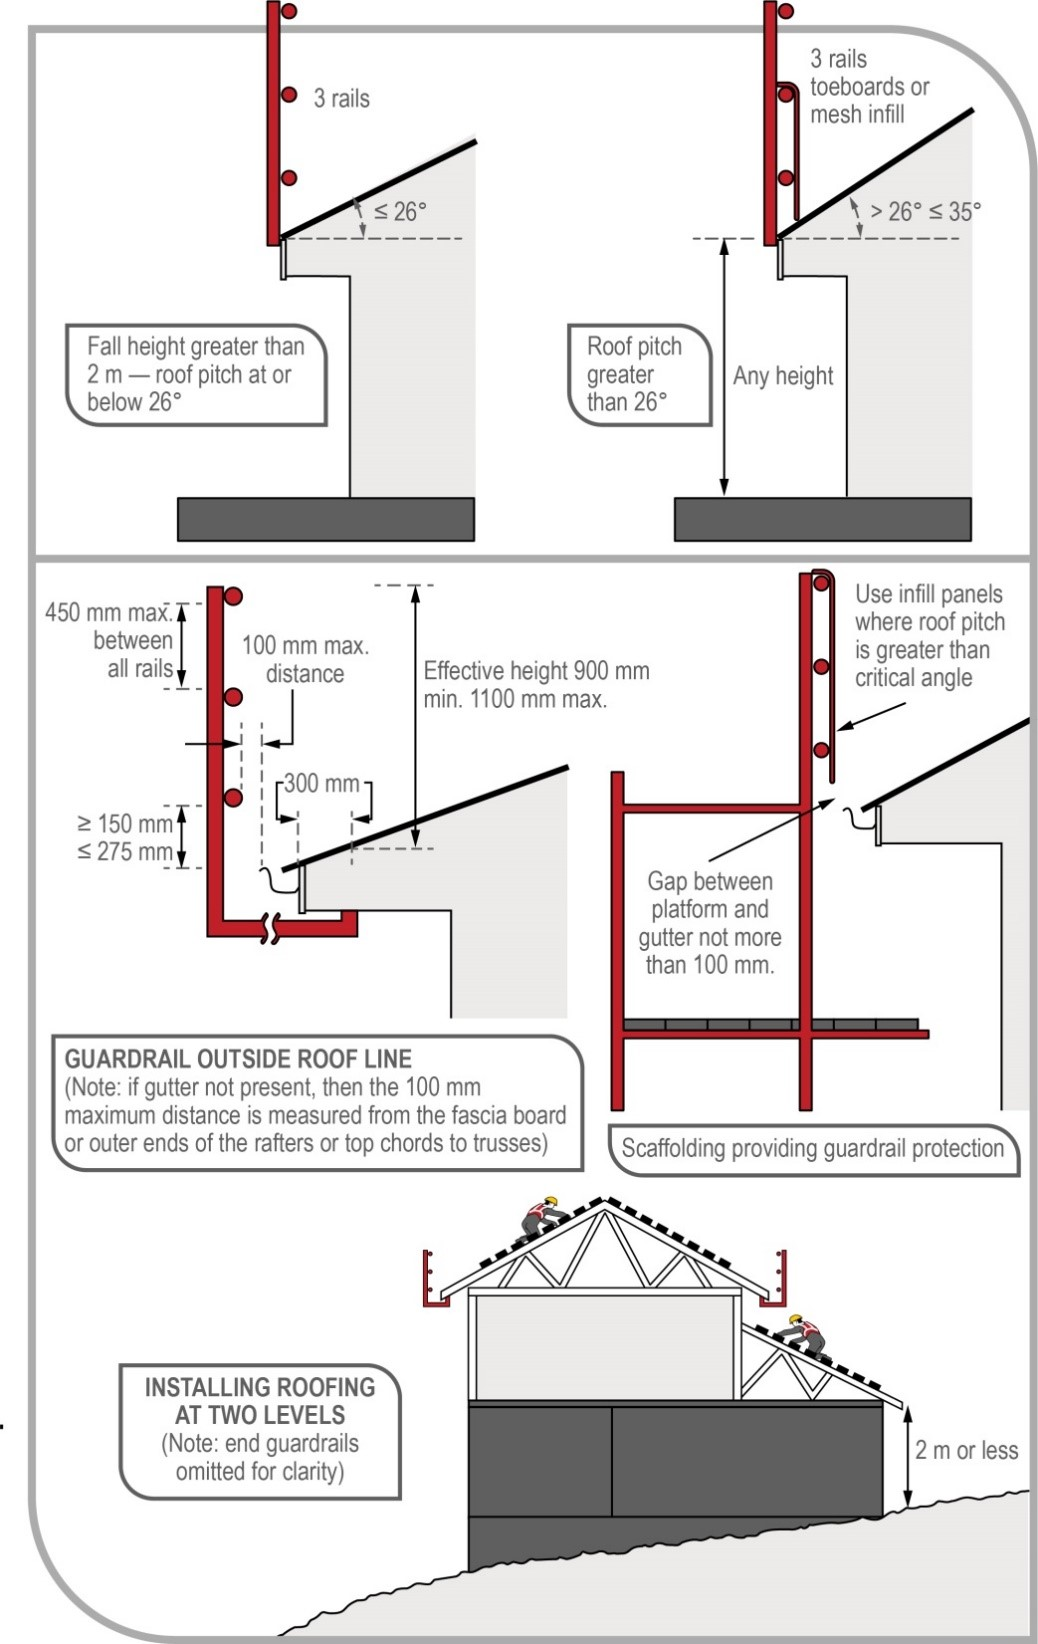 Guardrails should be used for roofing work above 2m from ground level.